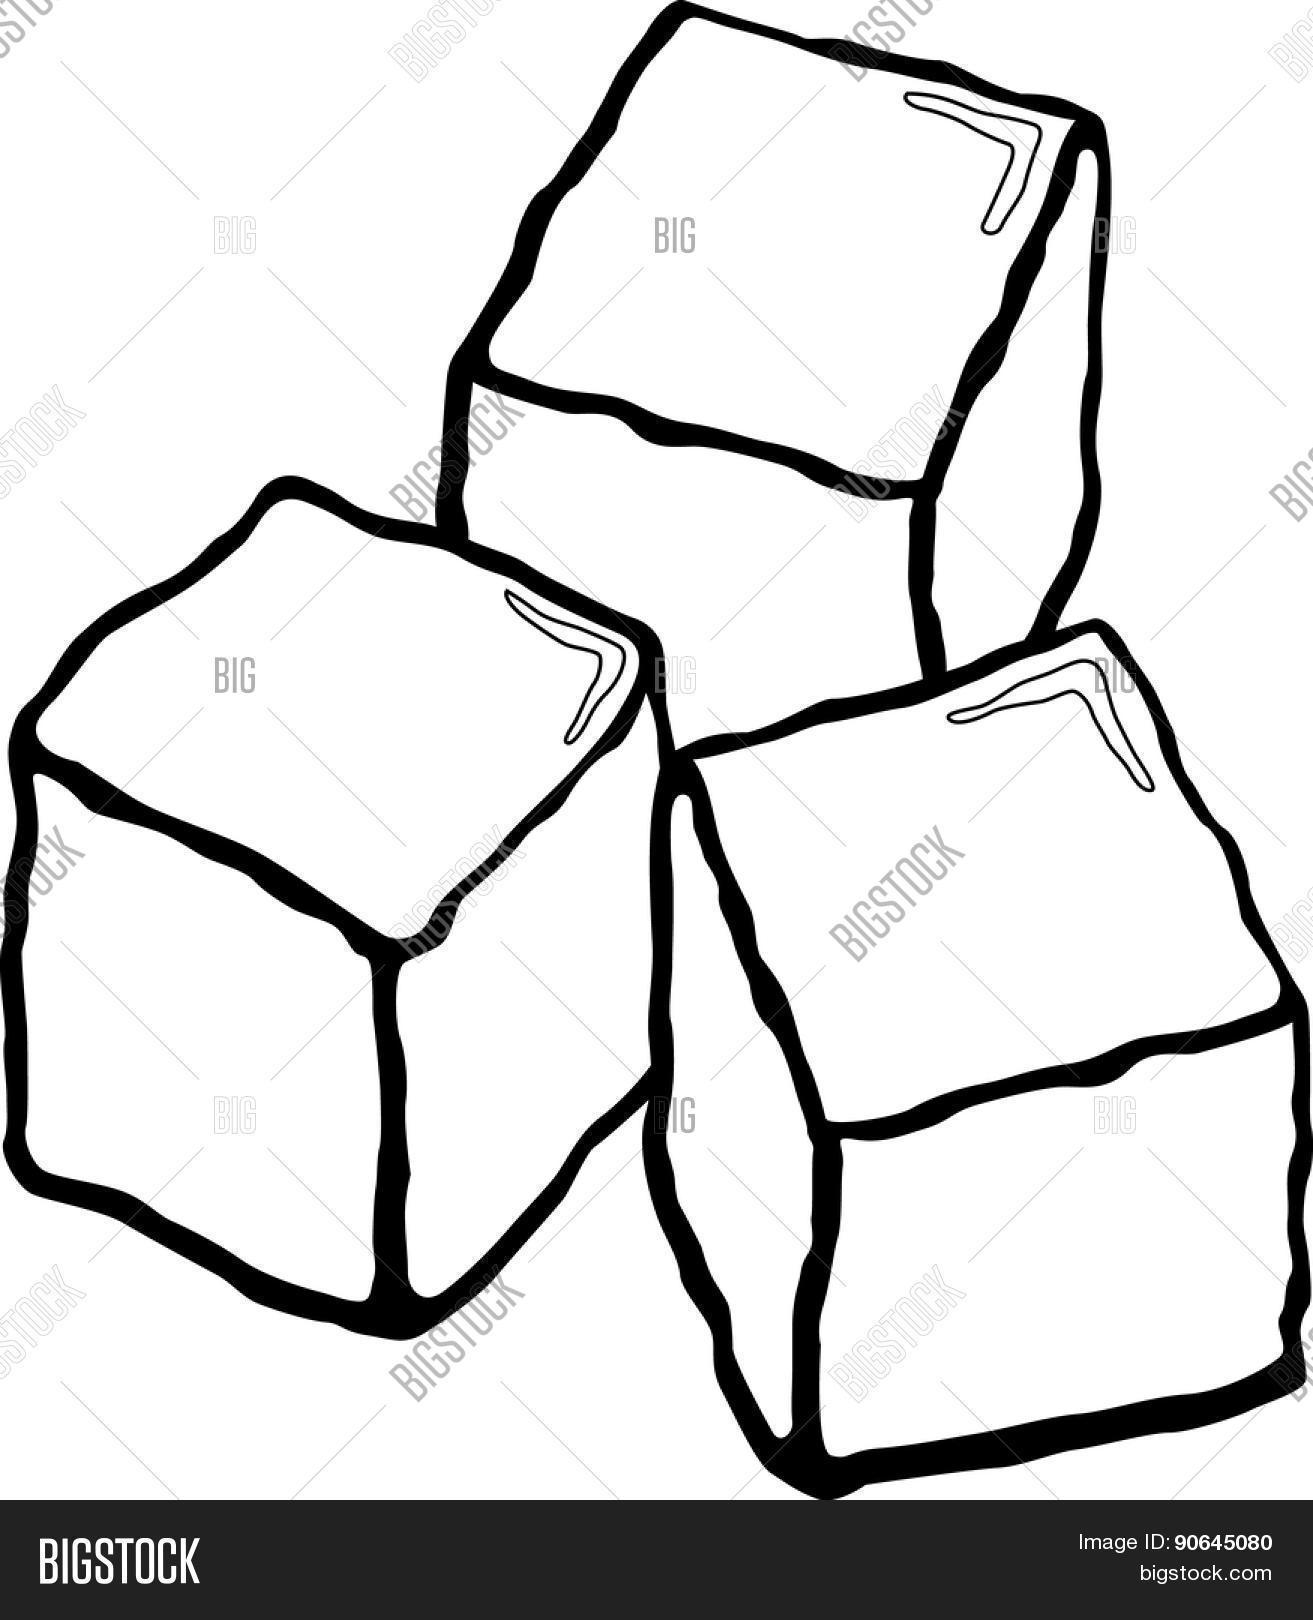 melting ice cube drawing at getdrawings com free for personal use rh getdrawings com ice cube clipart free ice cubes clipart black and white